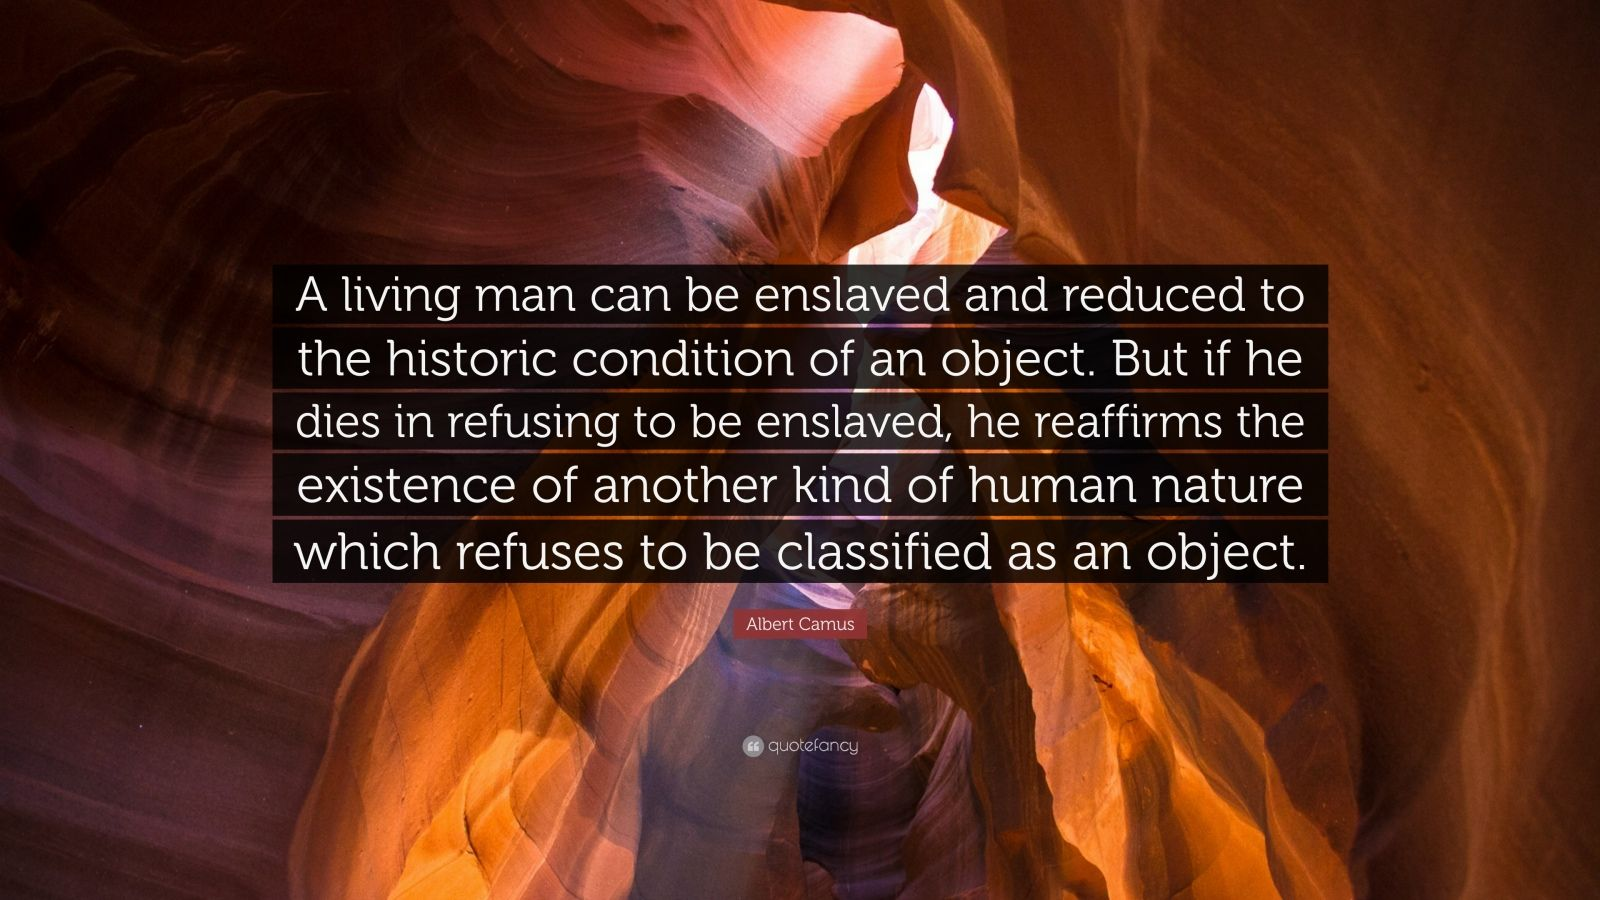 """Albert Camus Quote: """"A living man can be enslaved and reduced to the historic condition of an object. But if he dies in refusing to be enslaved, he reaffirms the existence of another kind of human nature which refuses to be classified as an object."""""""